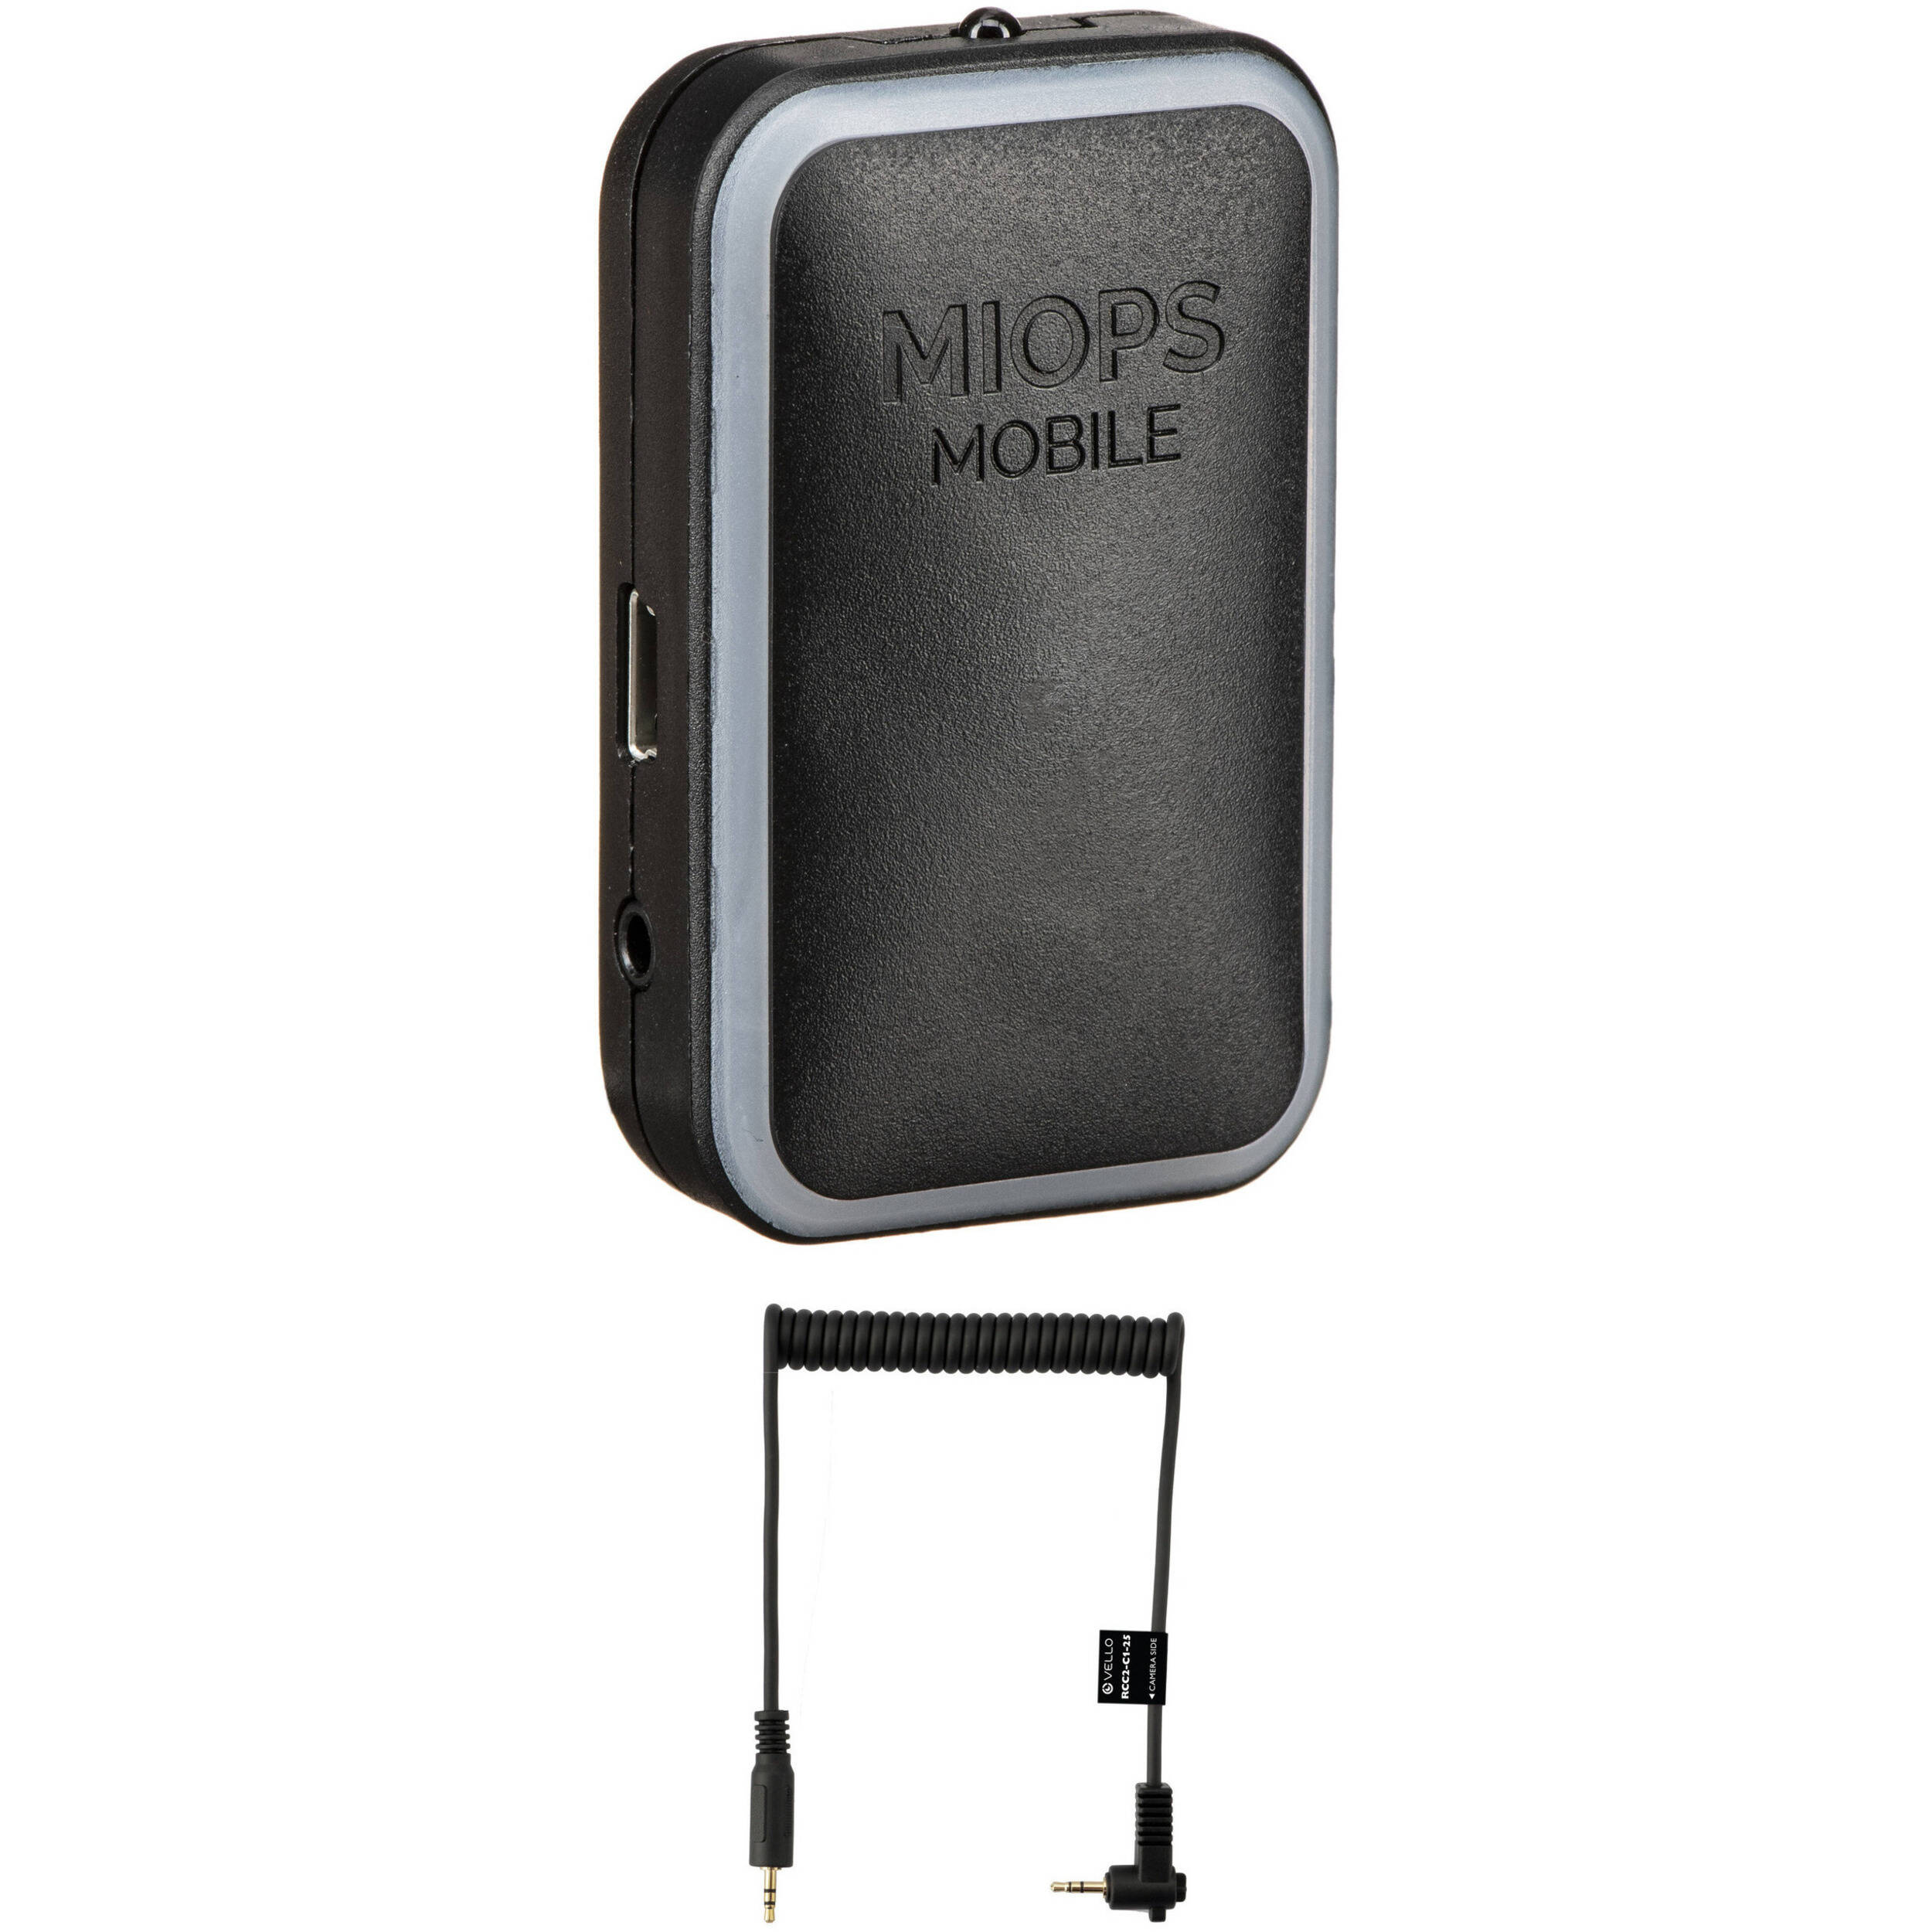 Miops MOBILE Remote with Cable Kit for Cameras with 2 5mm Sub-Mini  Connection